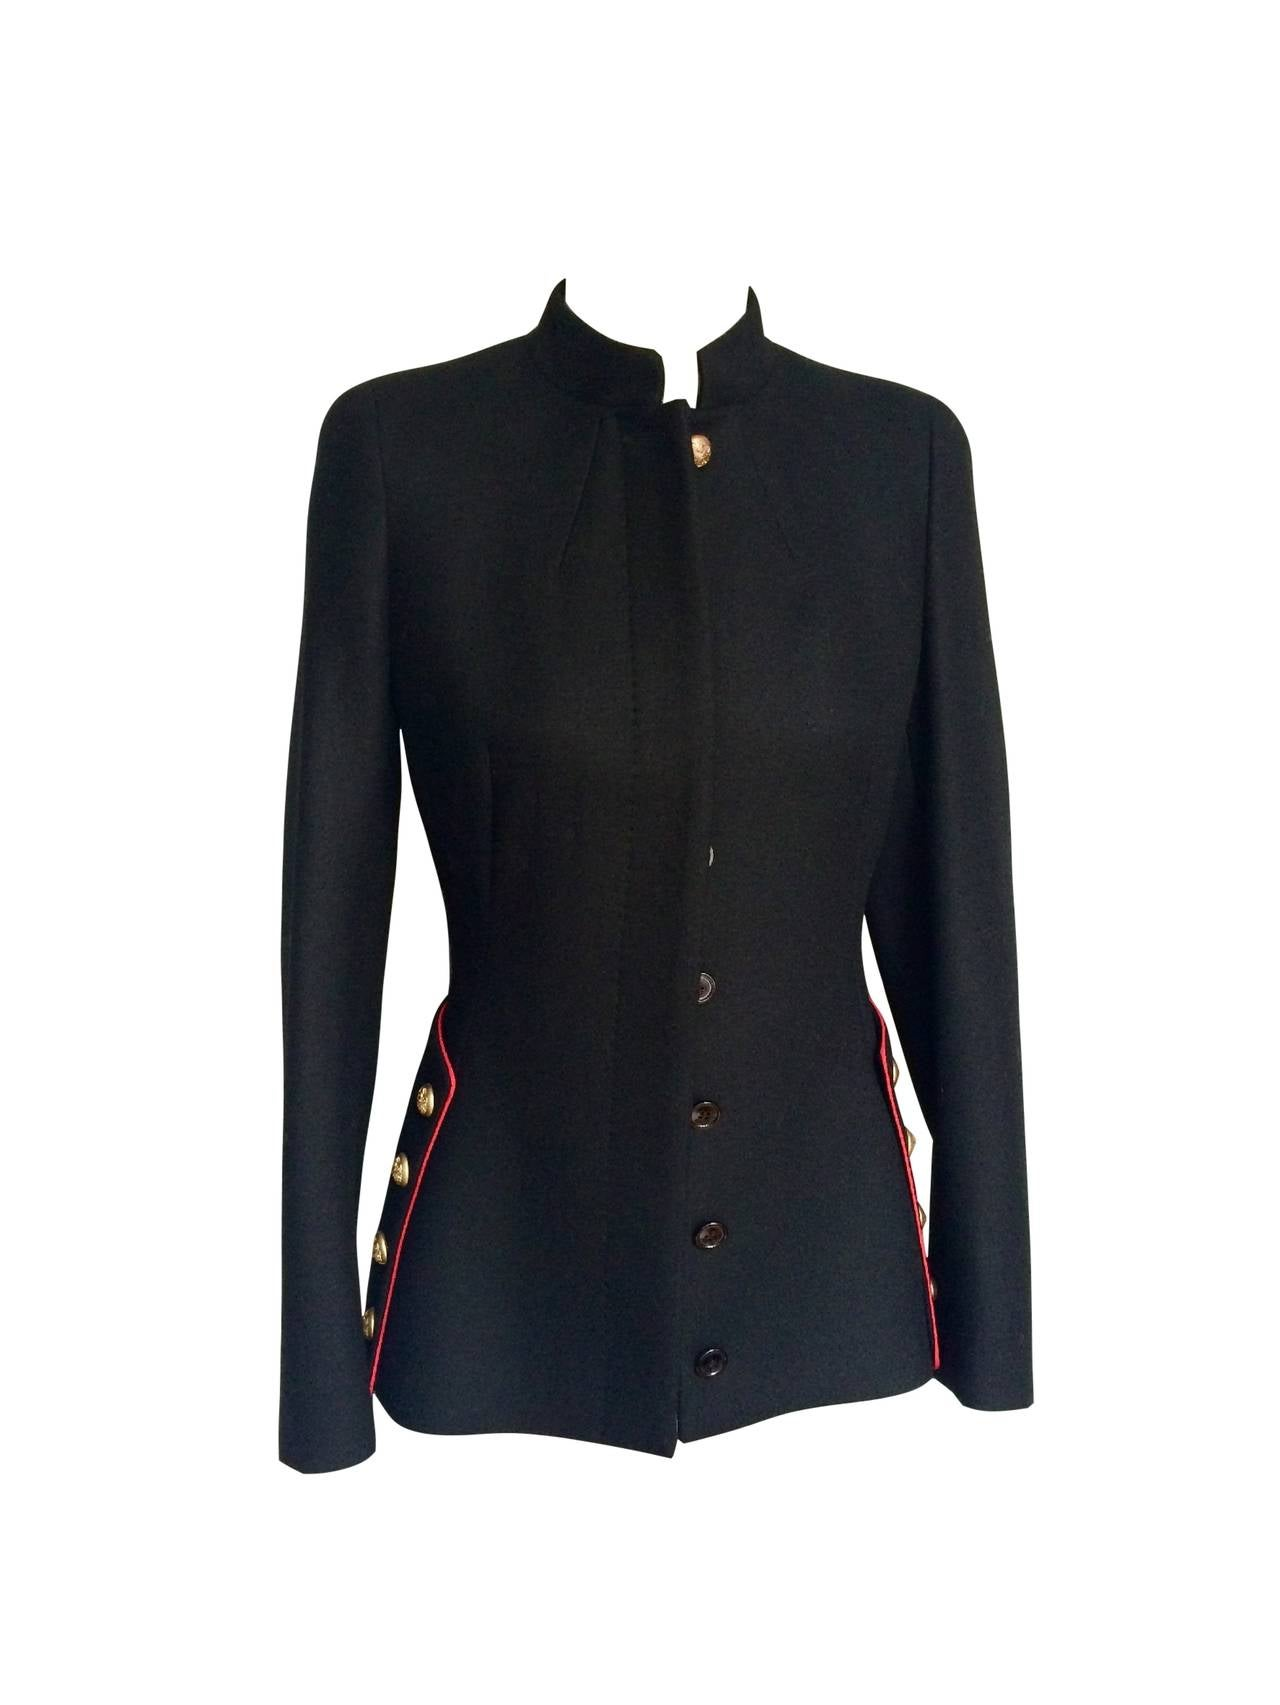 A brandnew emblematic piece from Pre-Fall 2011 designed by the talented Sarah Burton for Alexander McQueen. Inspired by Manet, with a military twist, this black wool jacket features a red braid and eight emblazoned golden buttons on the side. Ten